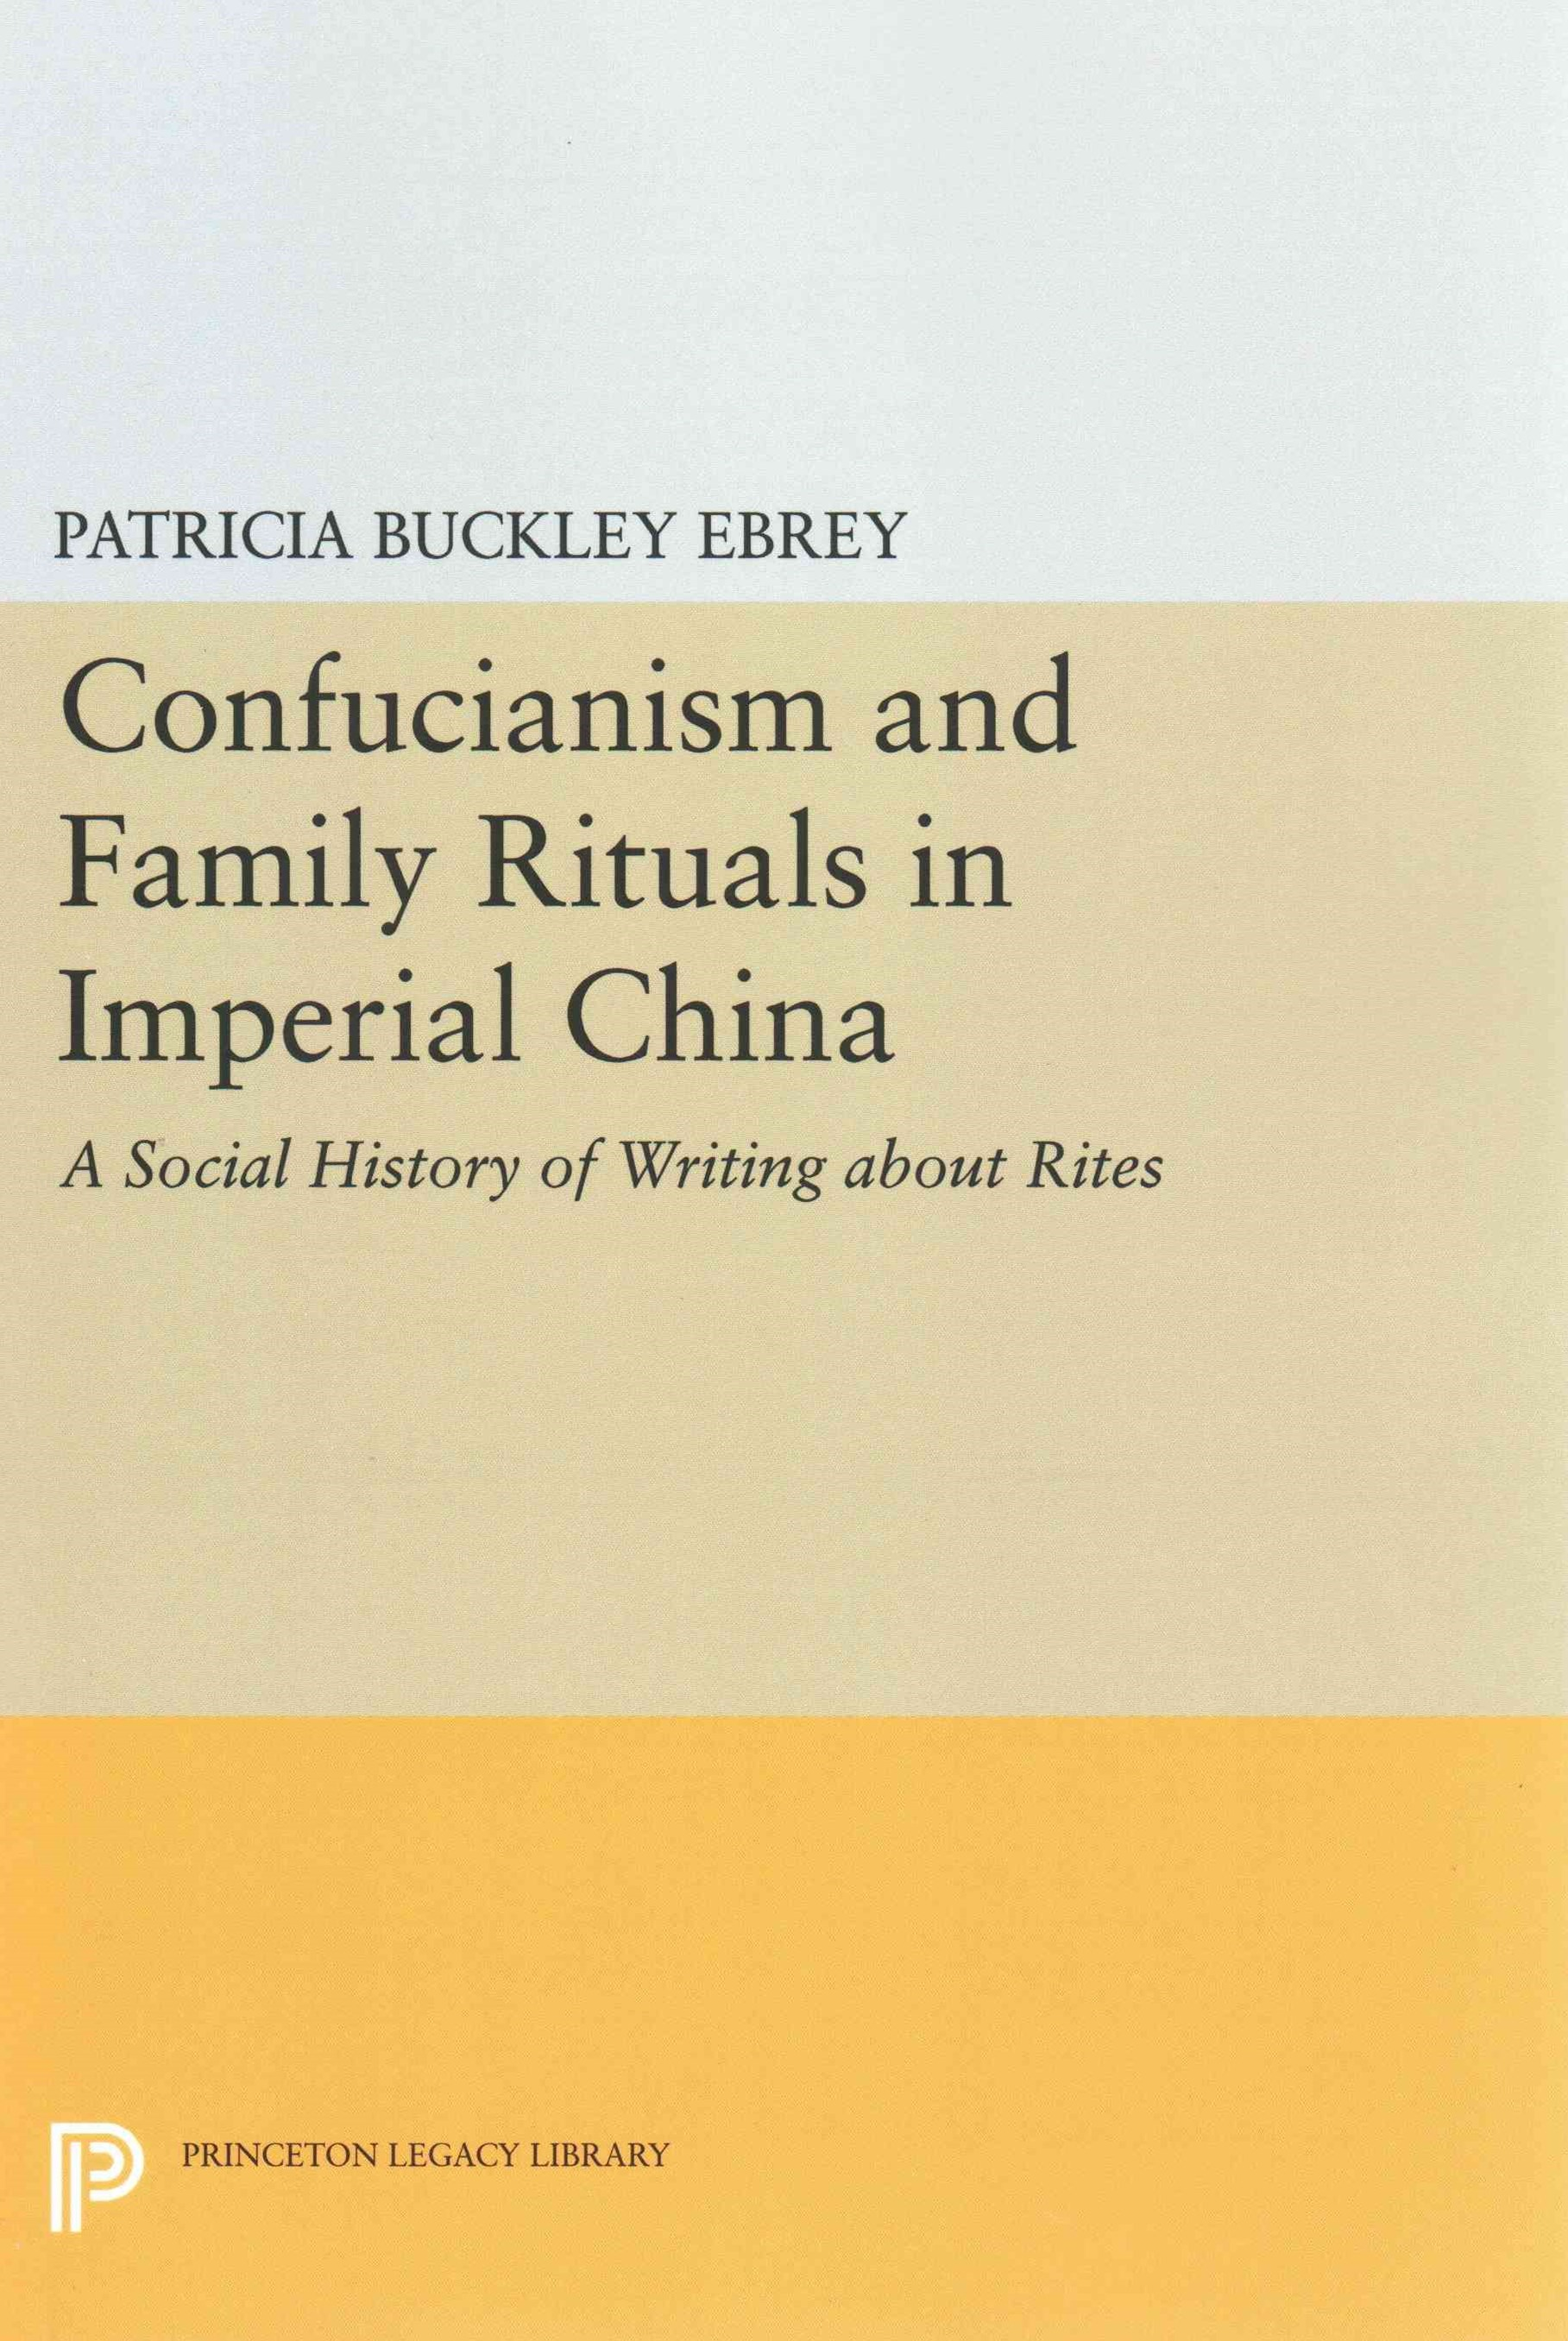 Confucianism and Family Rituals in Imperial China